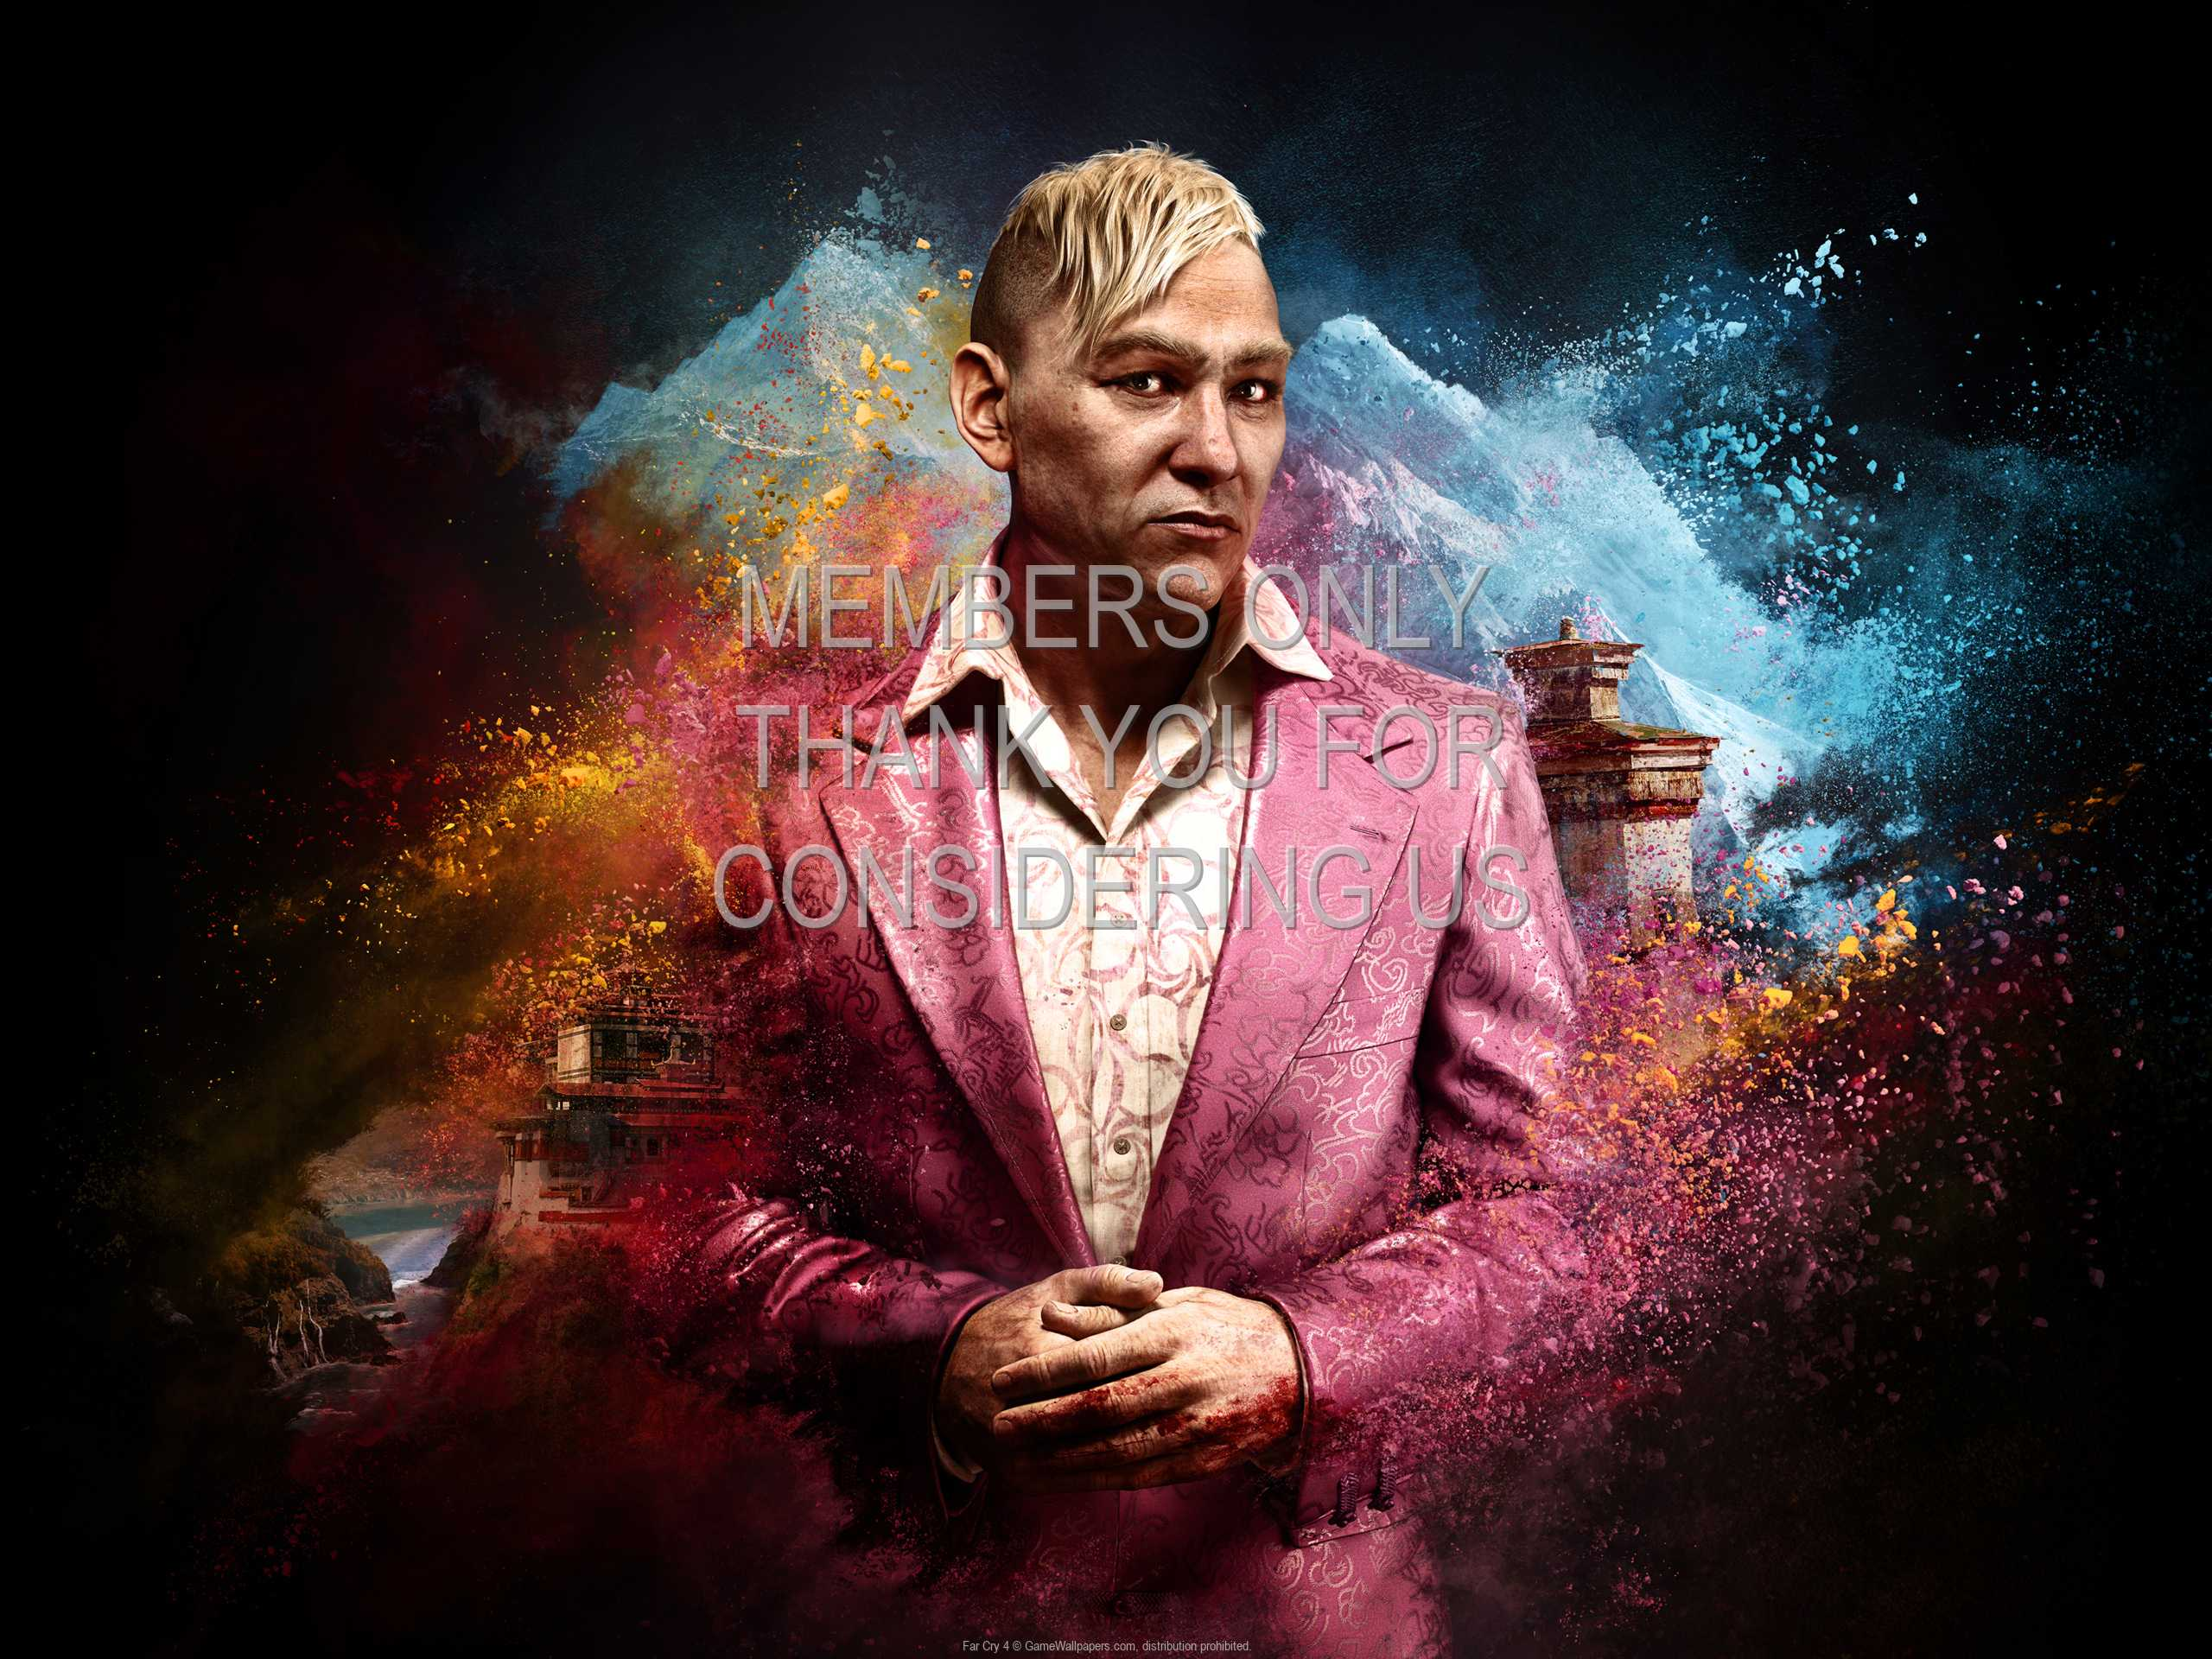 Far Cry 4 1080p Horizontal Mobile wallpaper or background 02